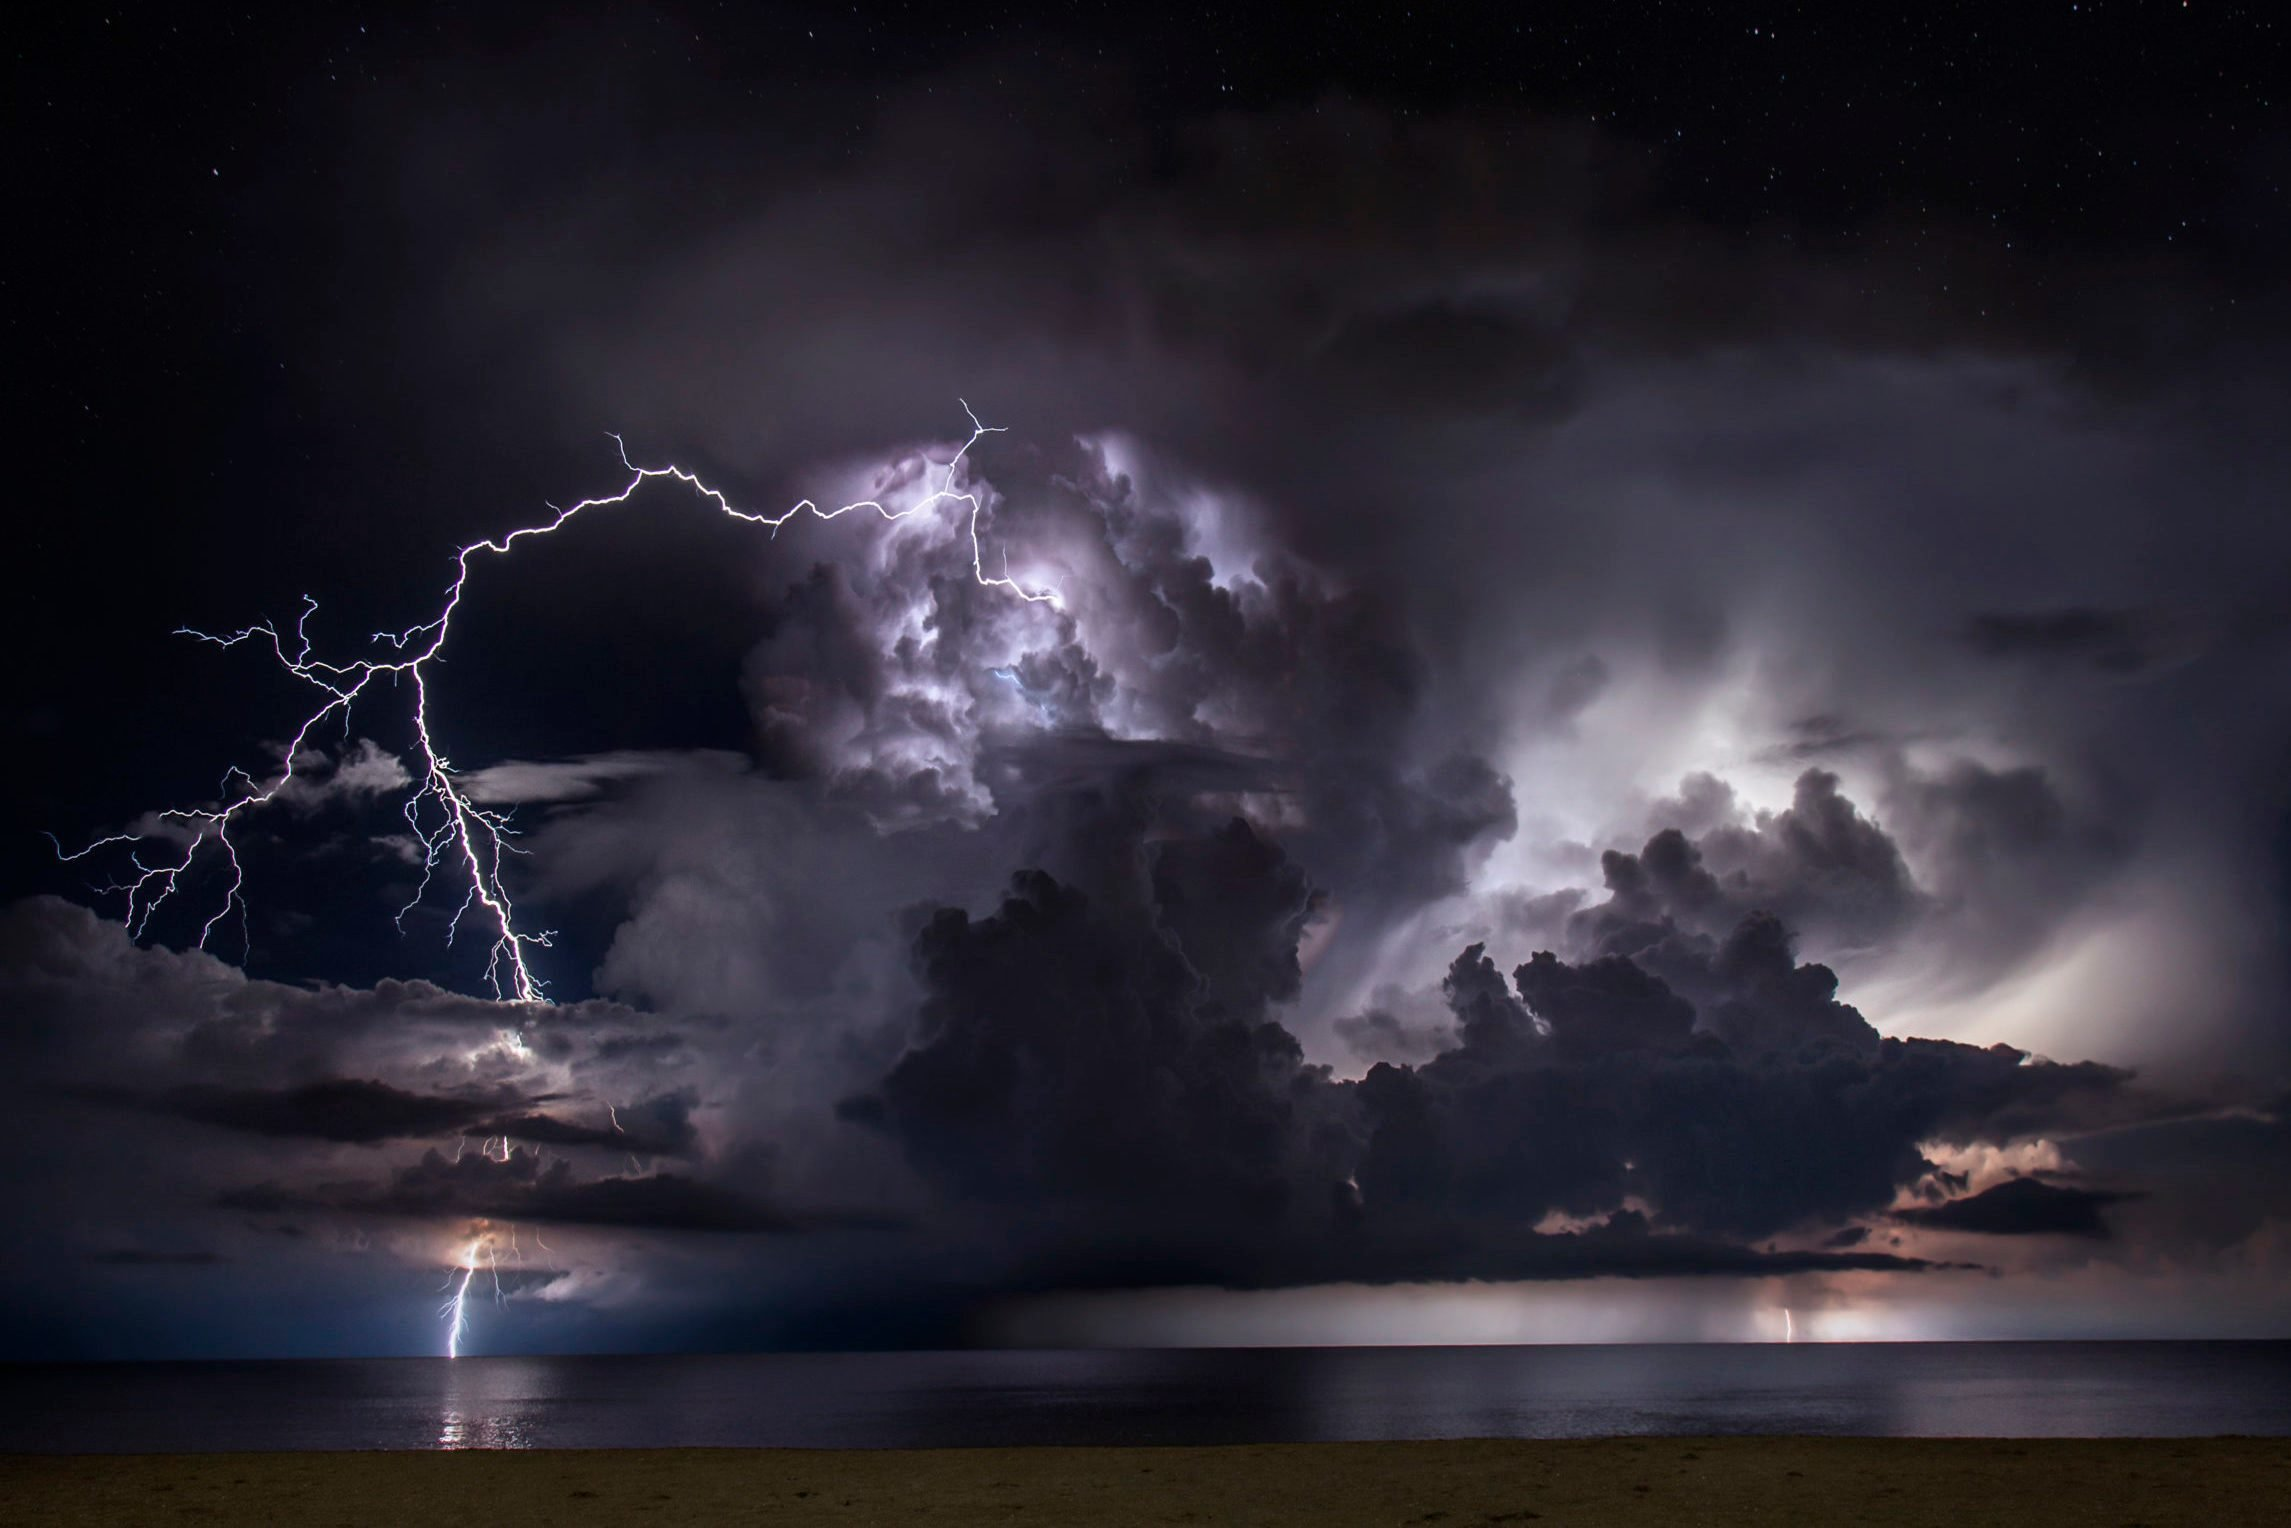 Storm Chaser Risks Life To Pursue America's Wildest Weather